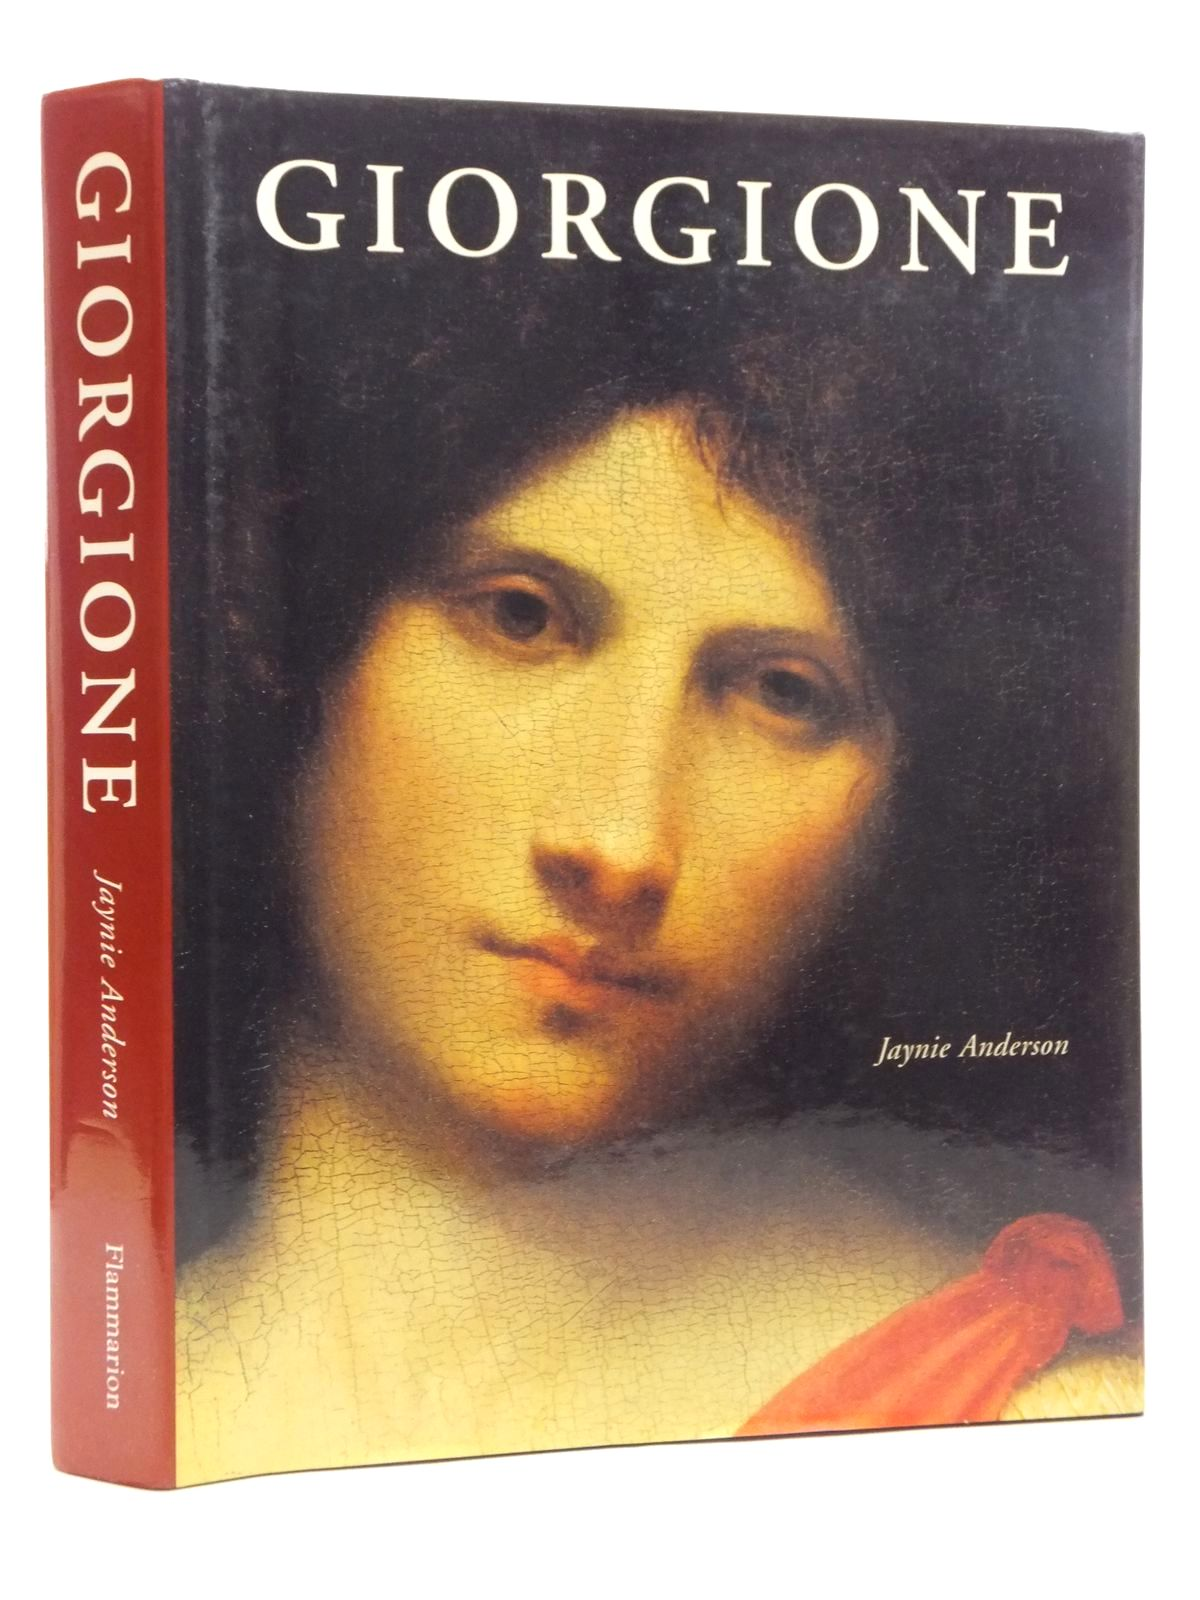 Photo of GIORGIONE: THE PAINTER OF 'POETIC BREVITY' written by Anderson, Jaynie illustrated by Giorgione, published by Flammarion (STOCK CODE: 1815062)  for sale by Stella & Rose's Books